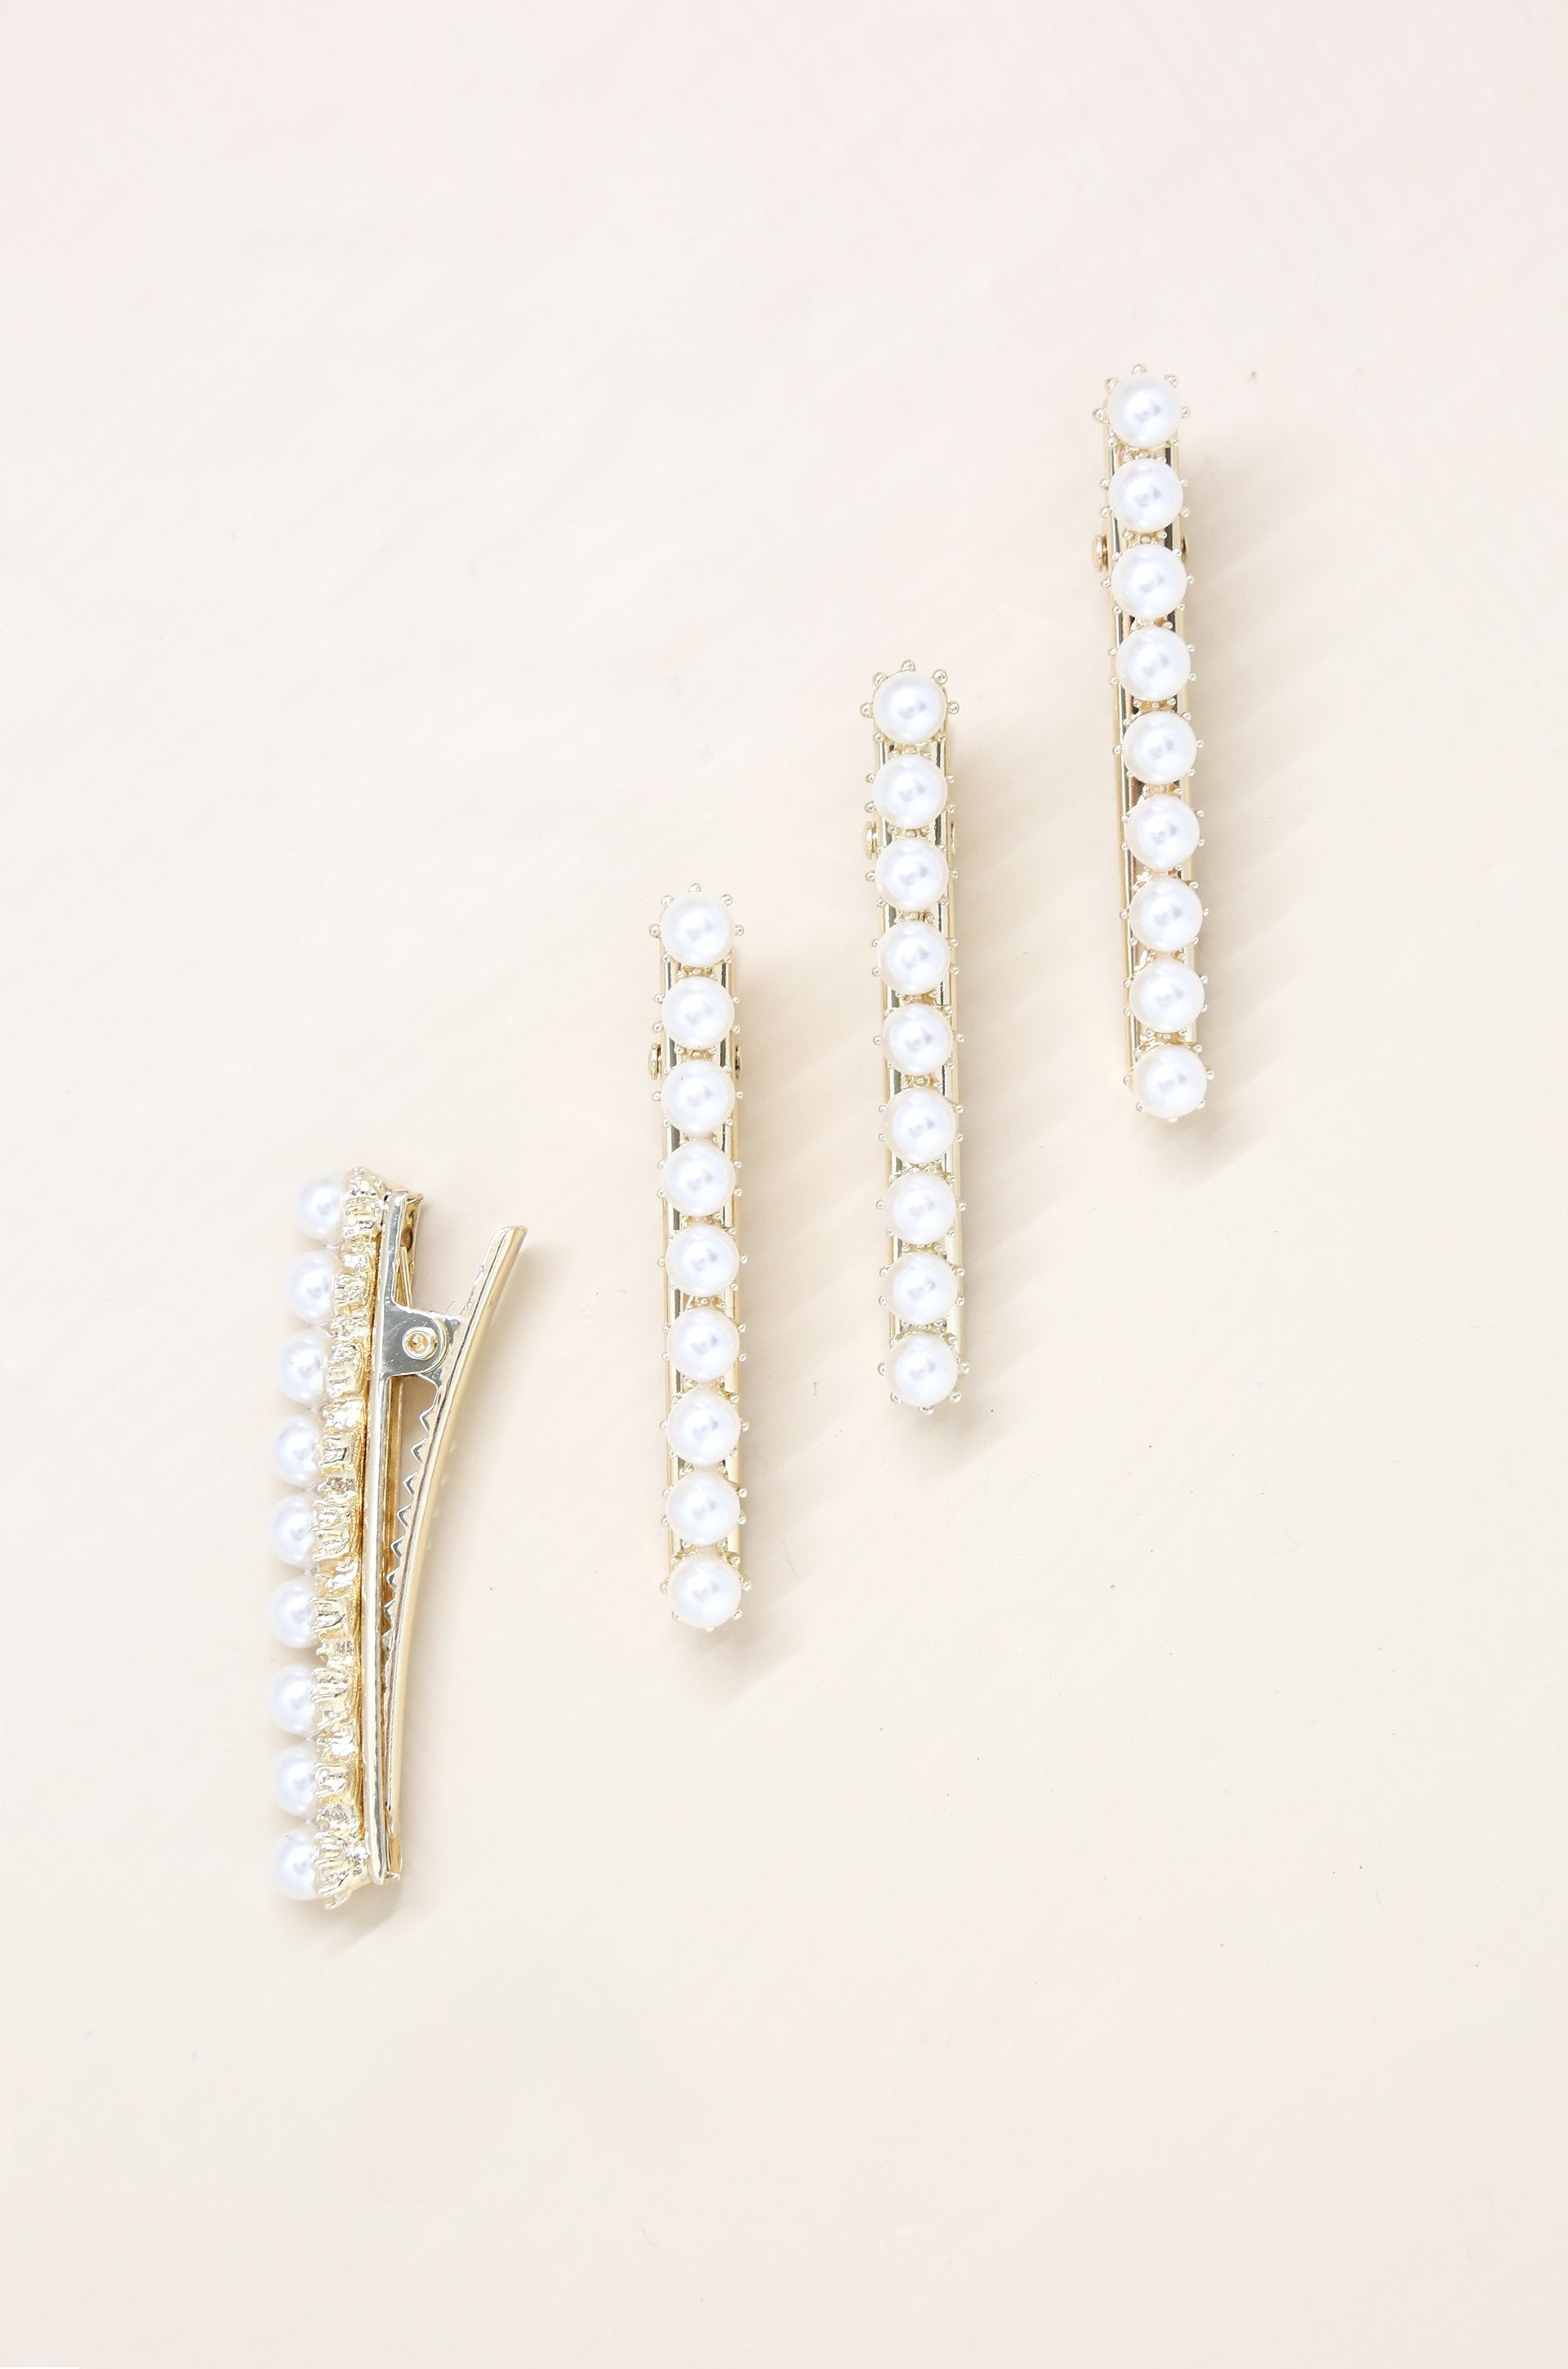 4pc Diana Pearl Hair Barrettes